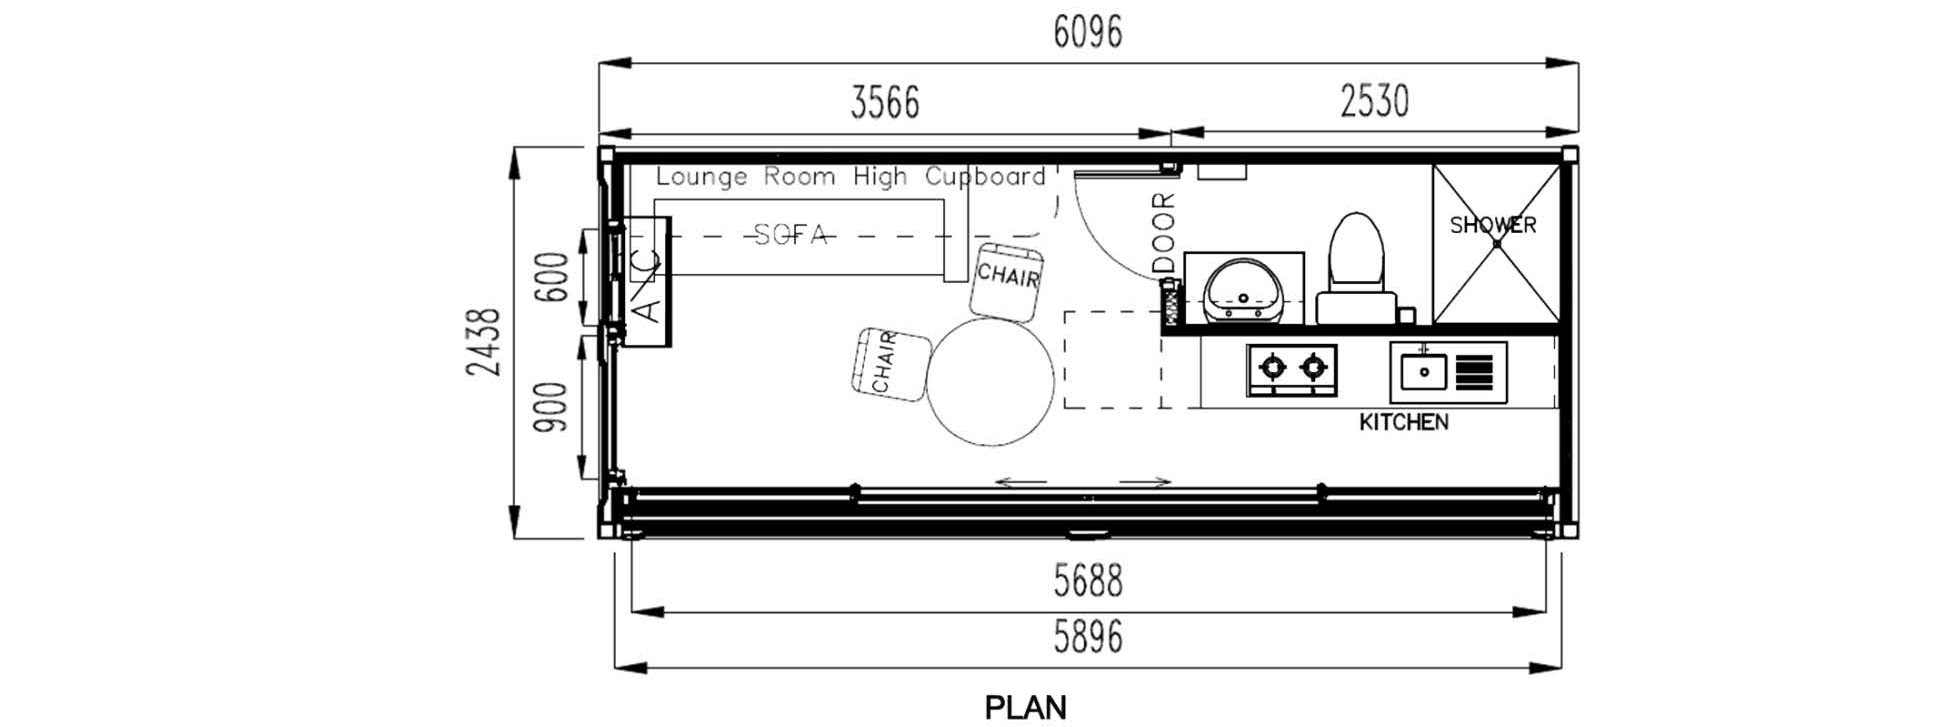 c019-20ft, kitchen, bed, bathroom unit with full fold out